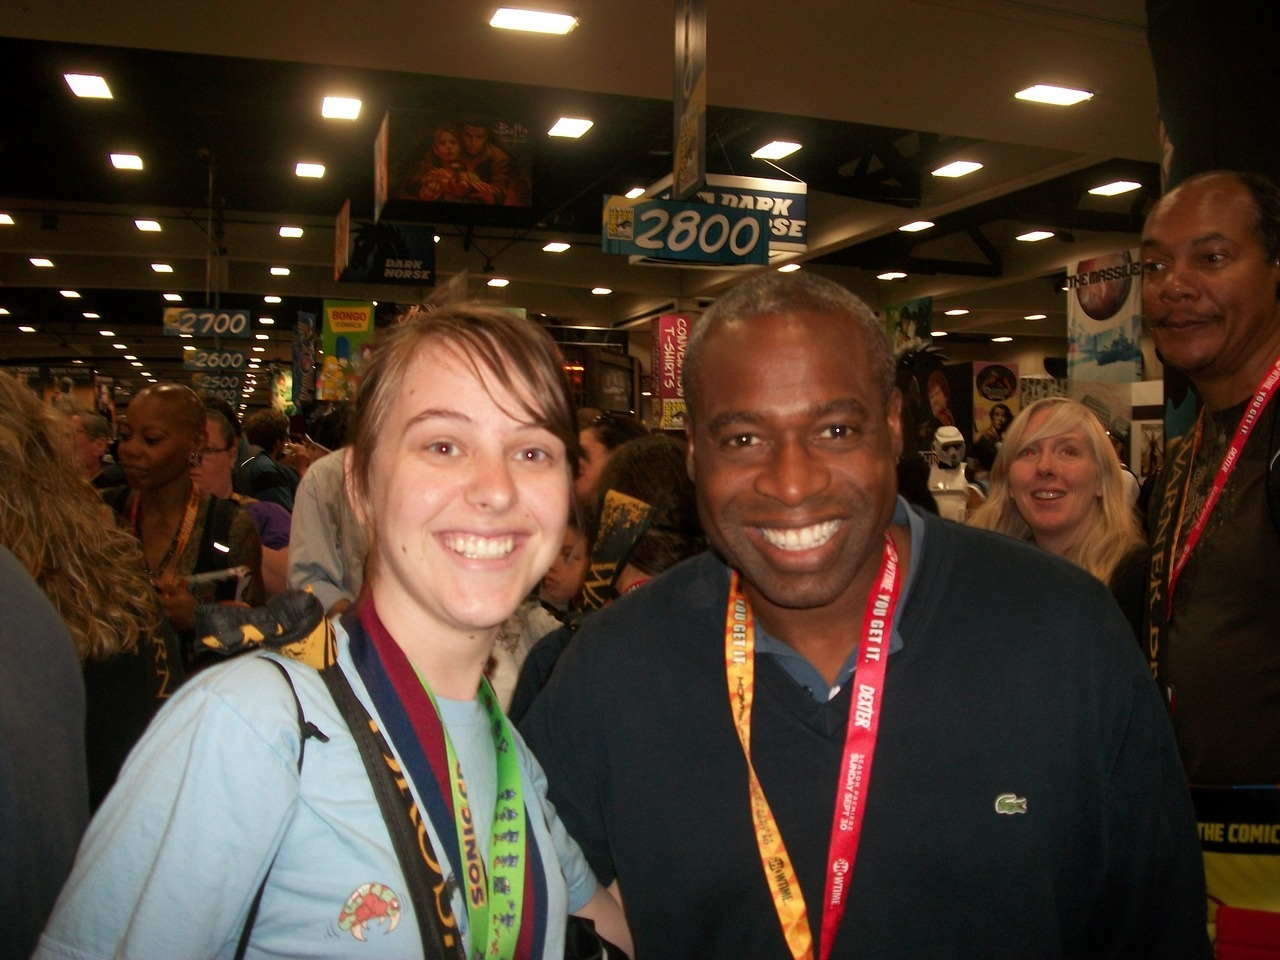 biologytextbook:  mrsjanestrider:  jetstrash:  so I met Mr. Moseby at Comic Con.  OH MY GOD  #JESUS TAKE THE PRNDL